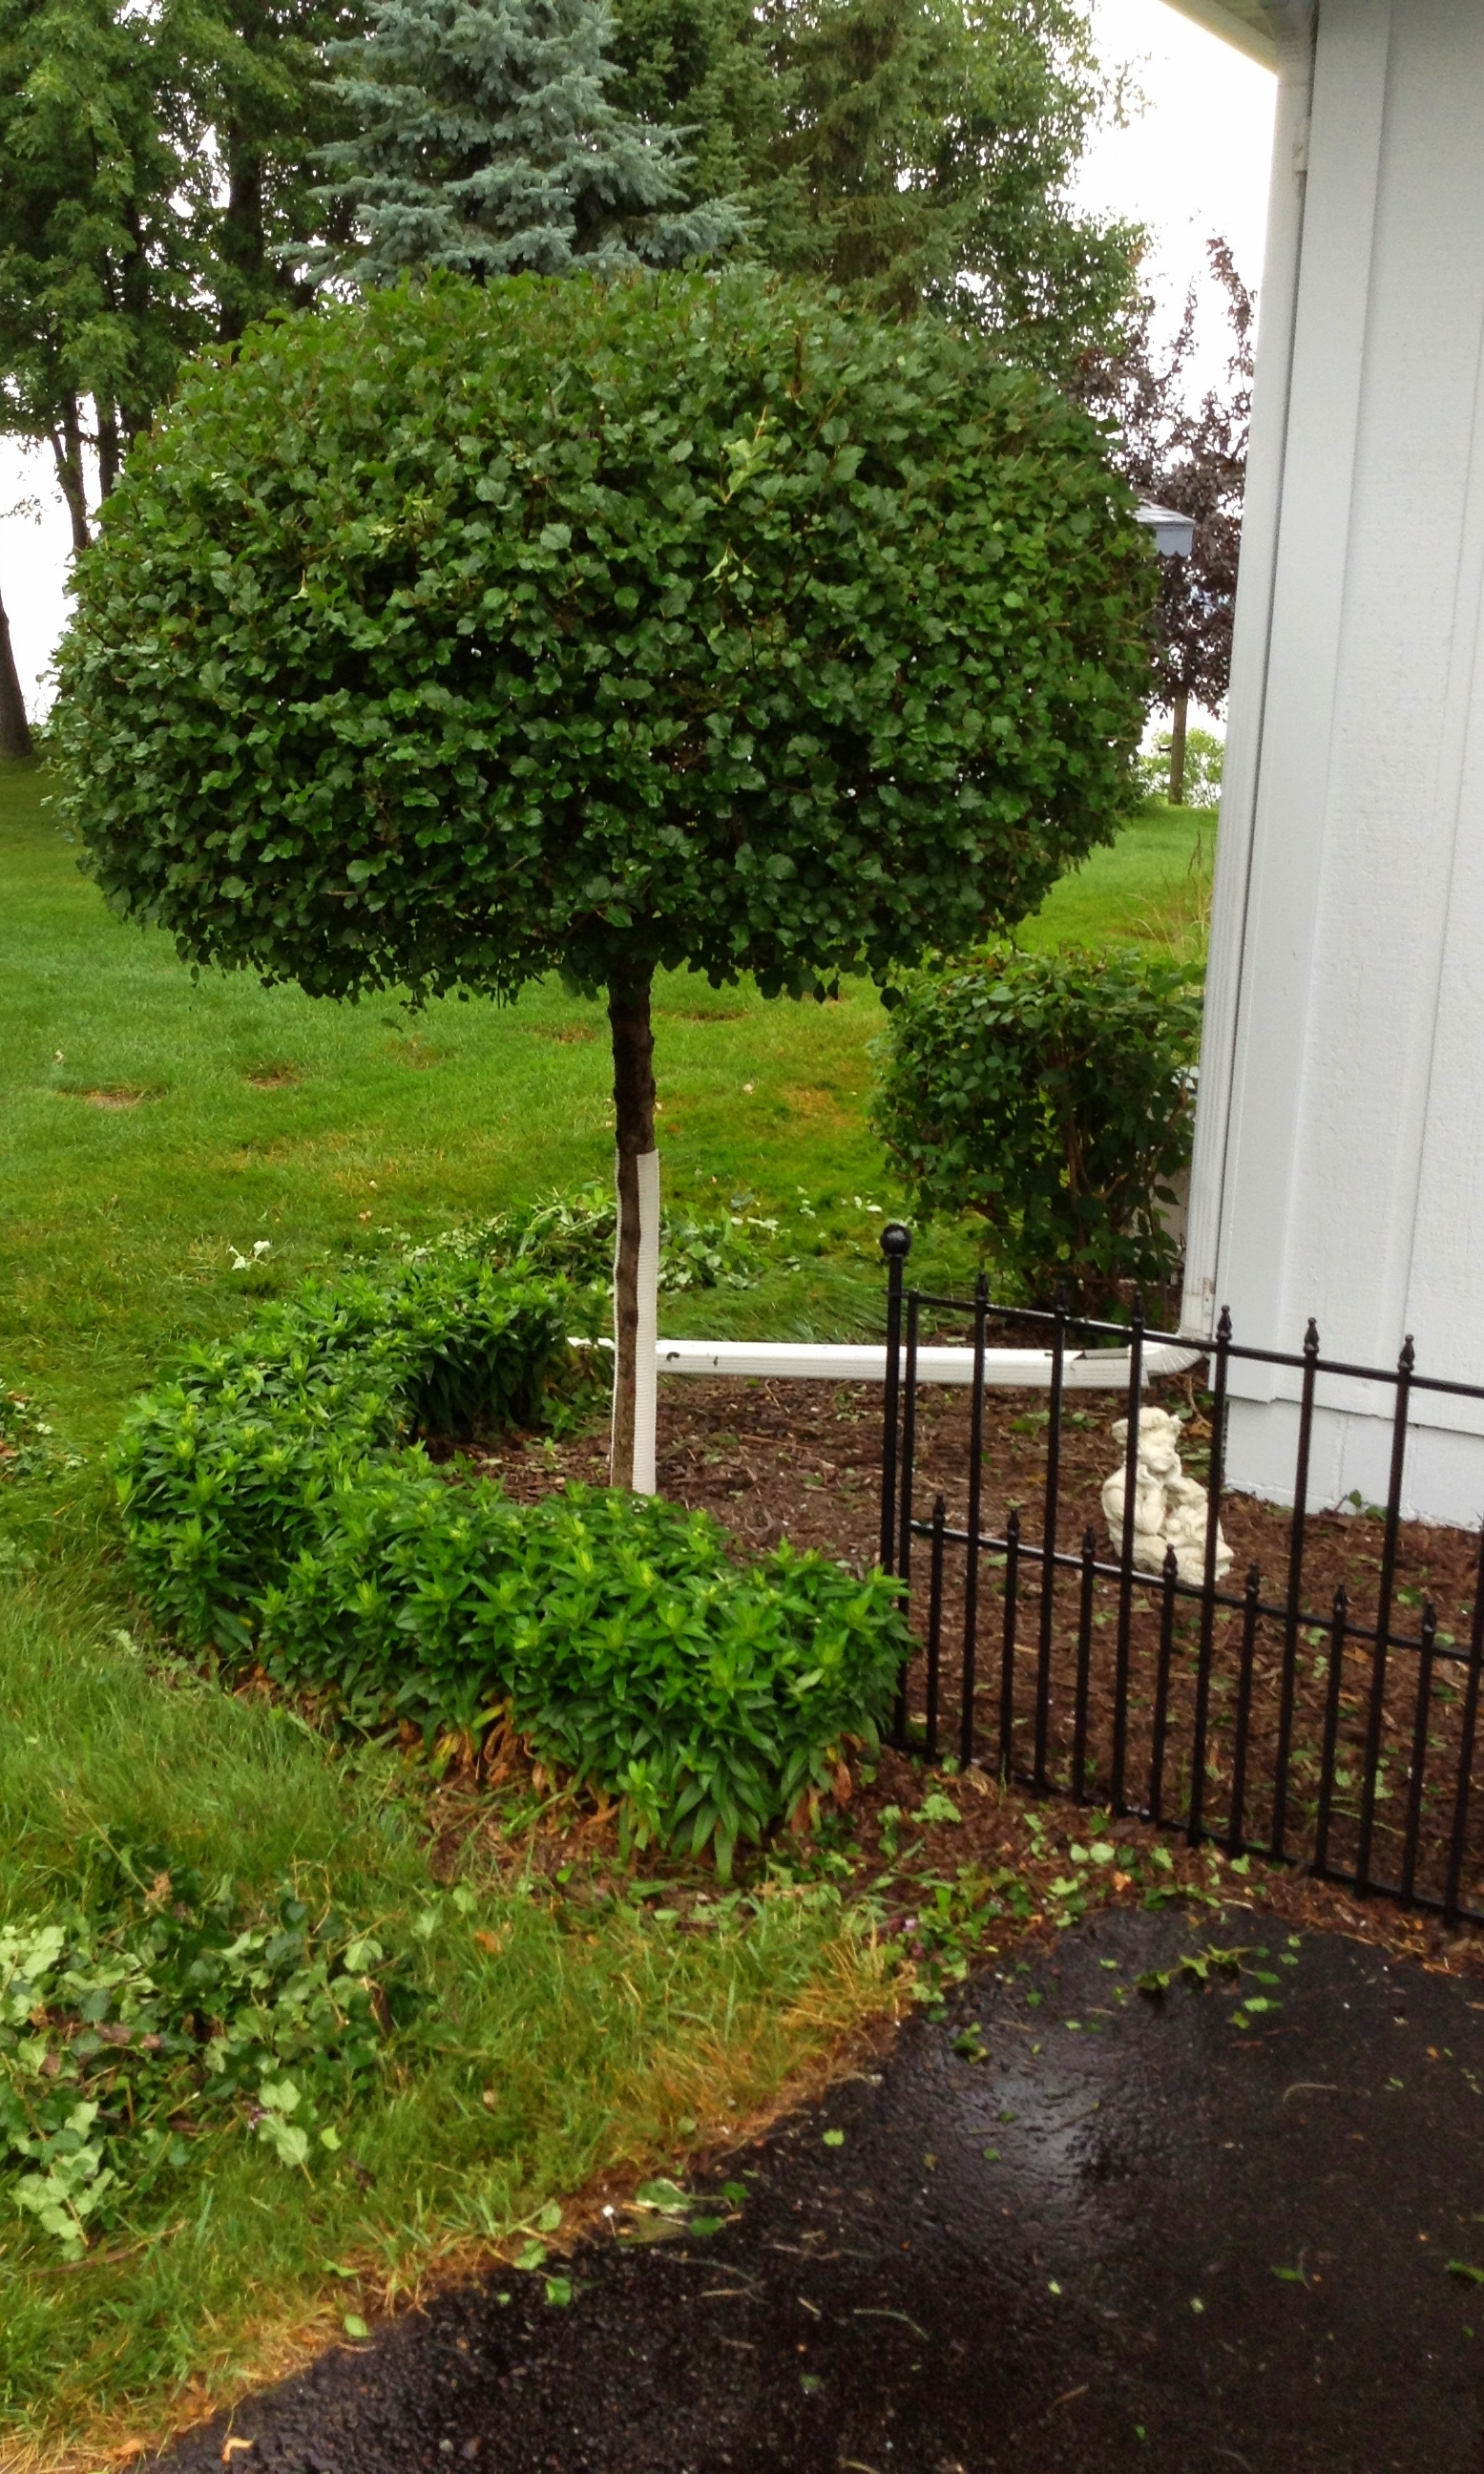 Ultimate Lawns - Shrub Trimming - Mclean/Chippew Falls